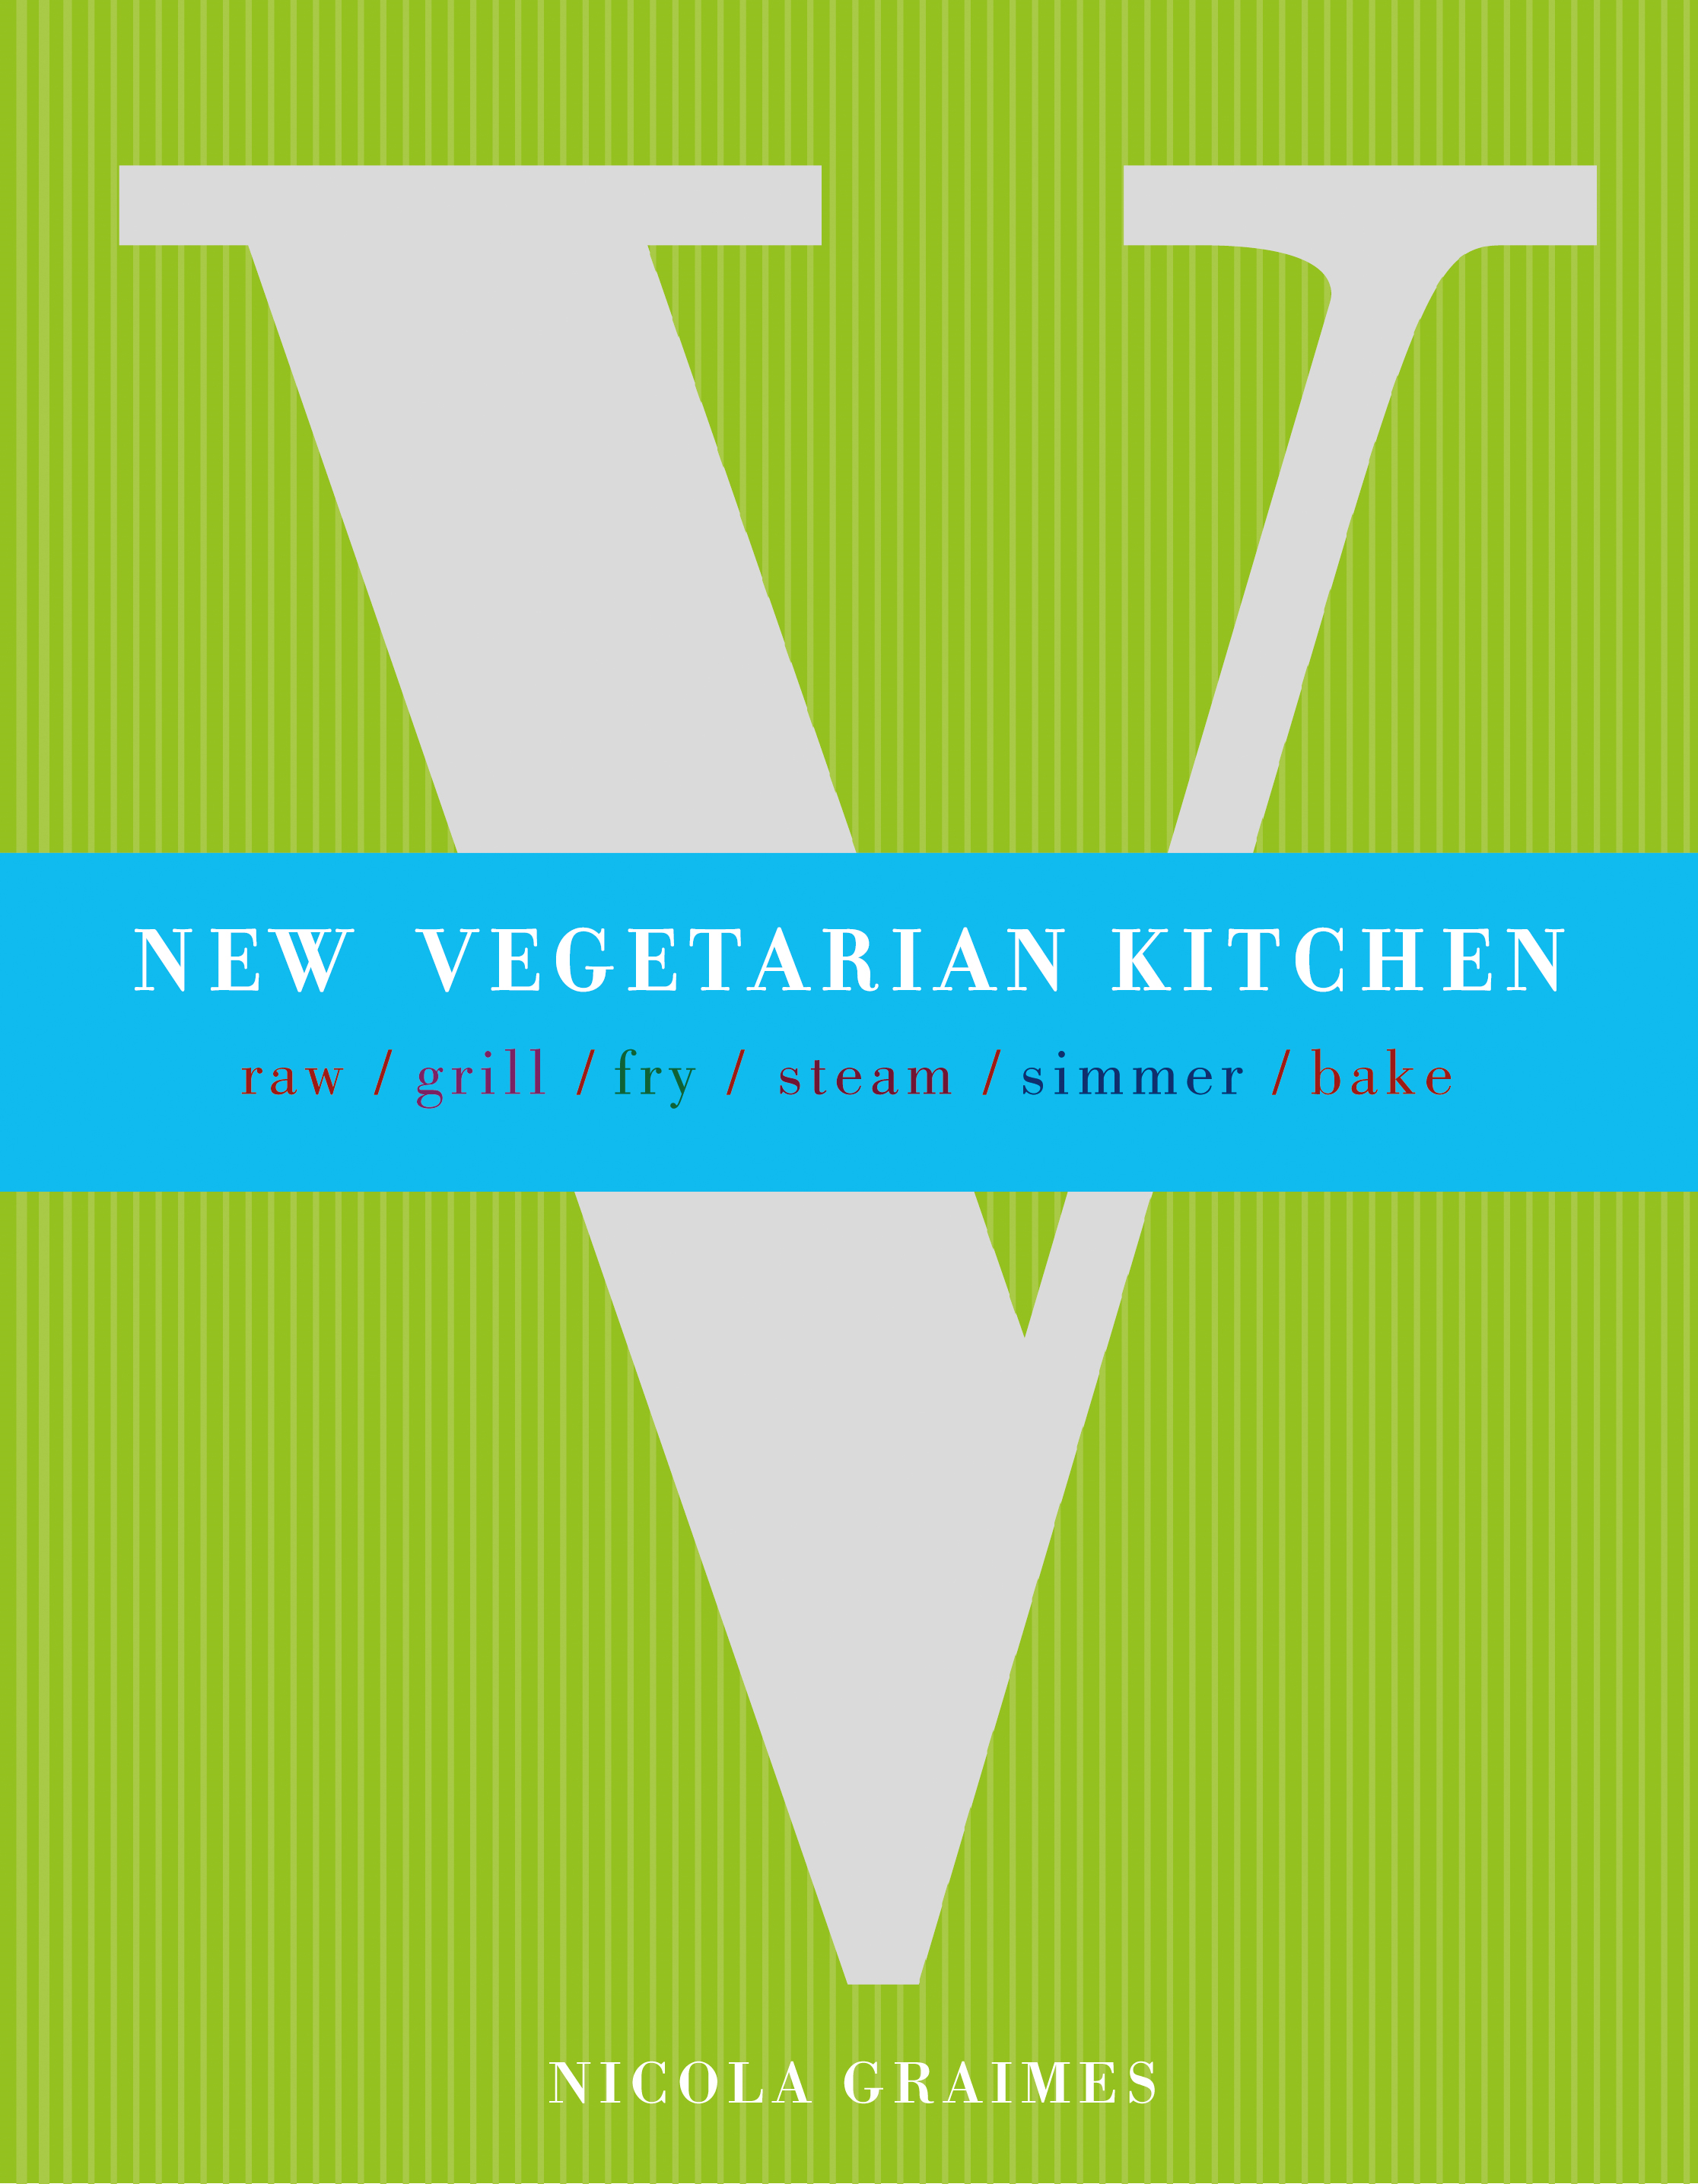 New Vegetarian Kitchen: Raw * Grill * Fry * Steam * Simmer * Bake